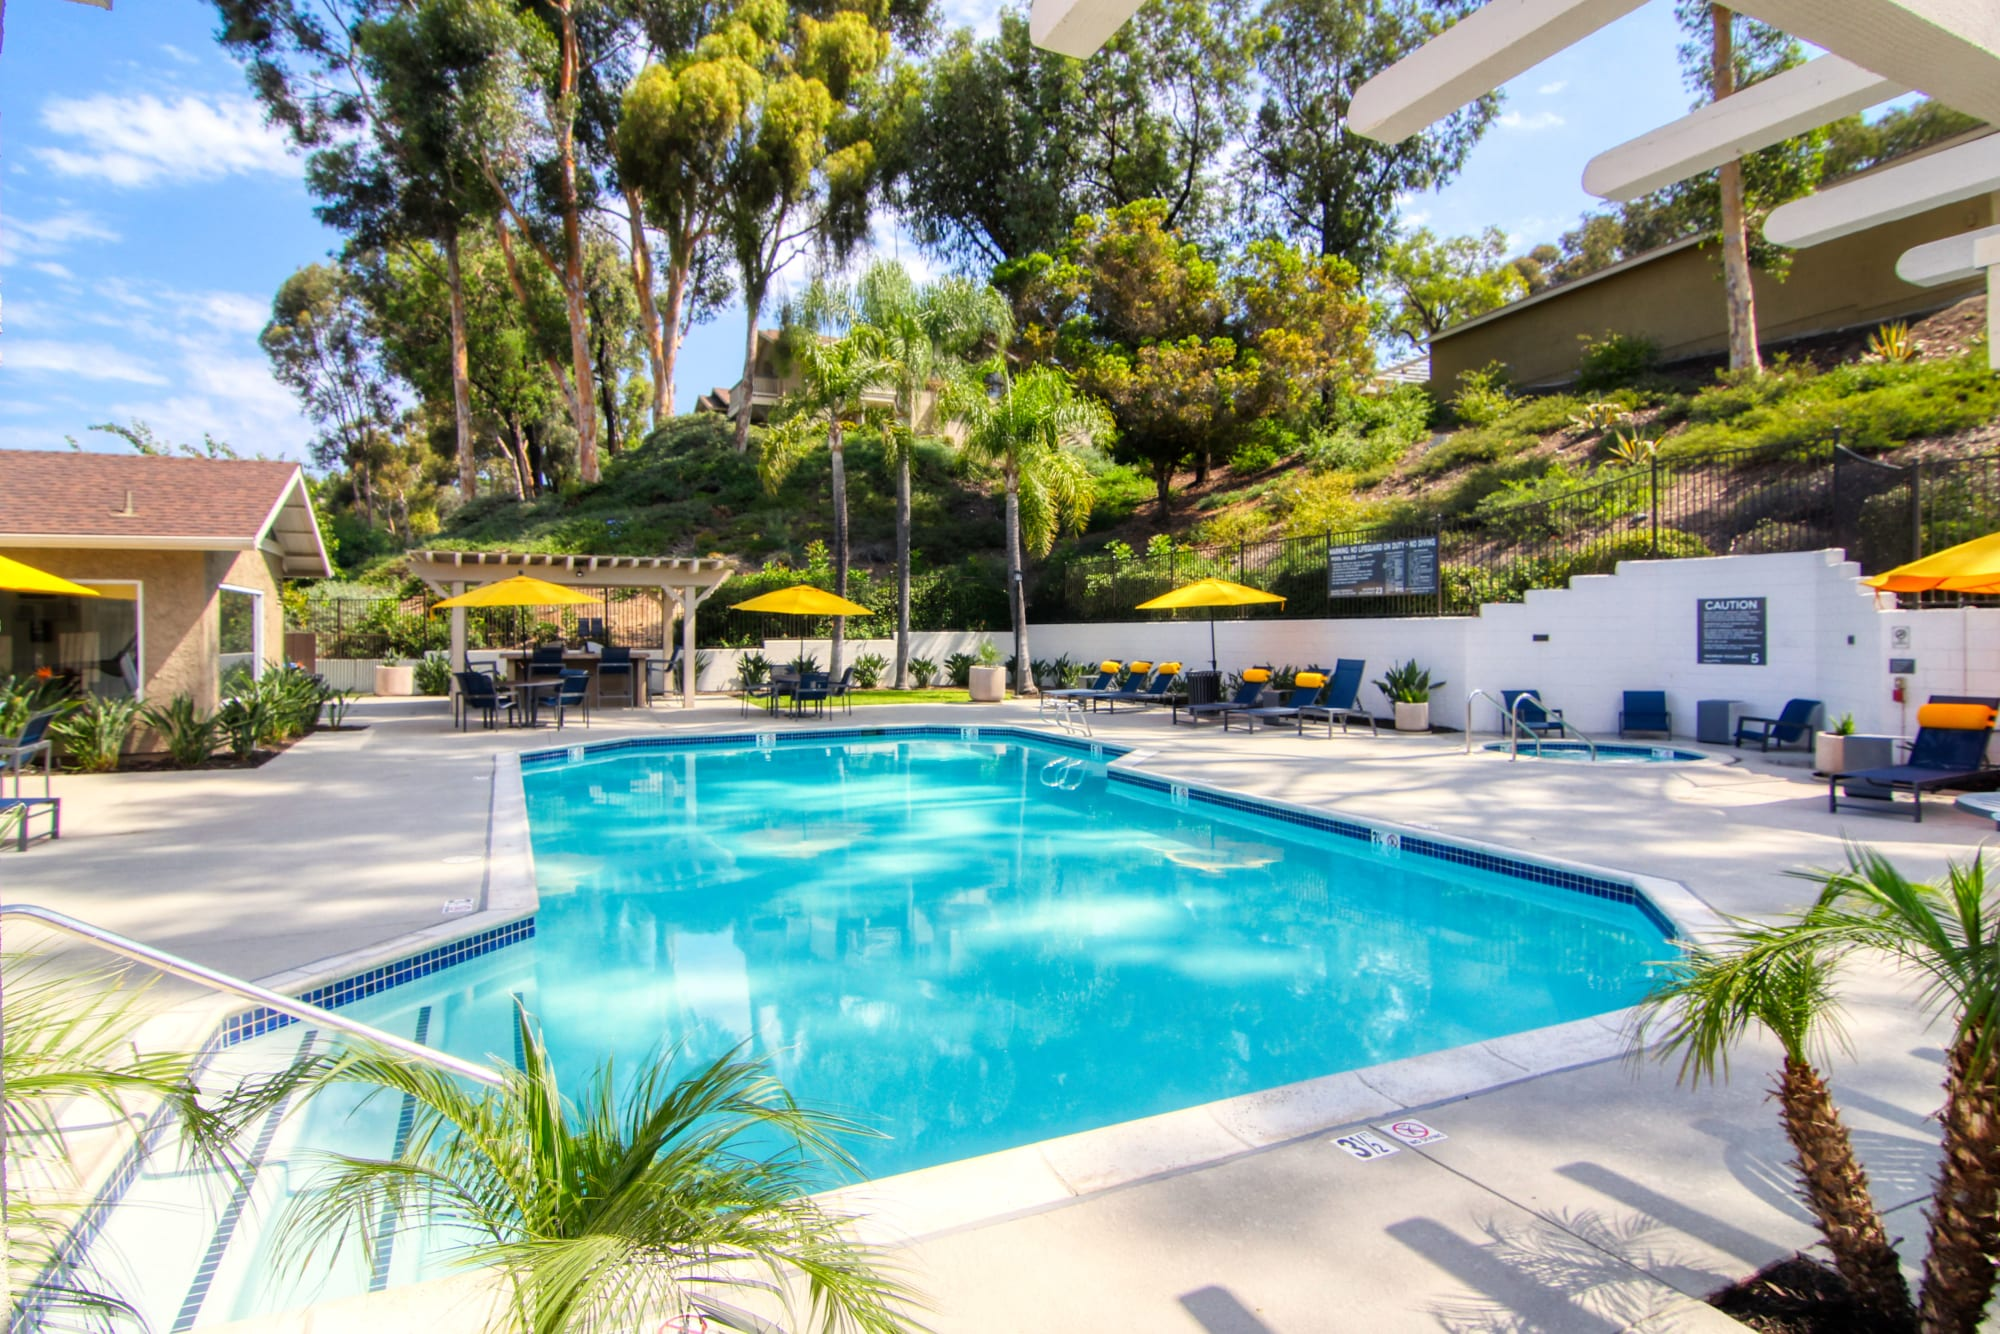 The pool at sunset at Lakeview Village Apartments in Spring Valley, California